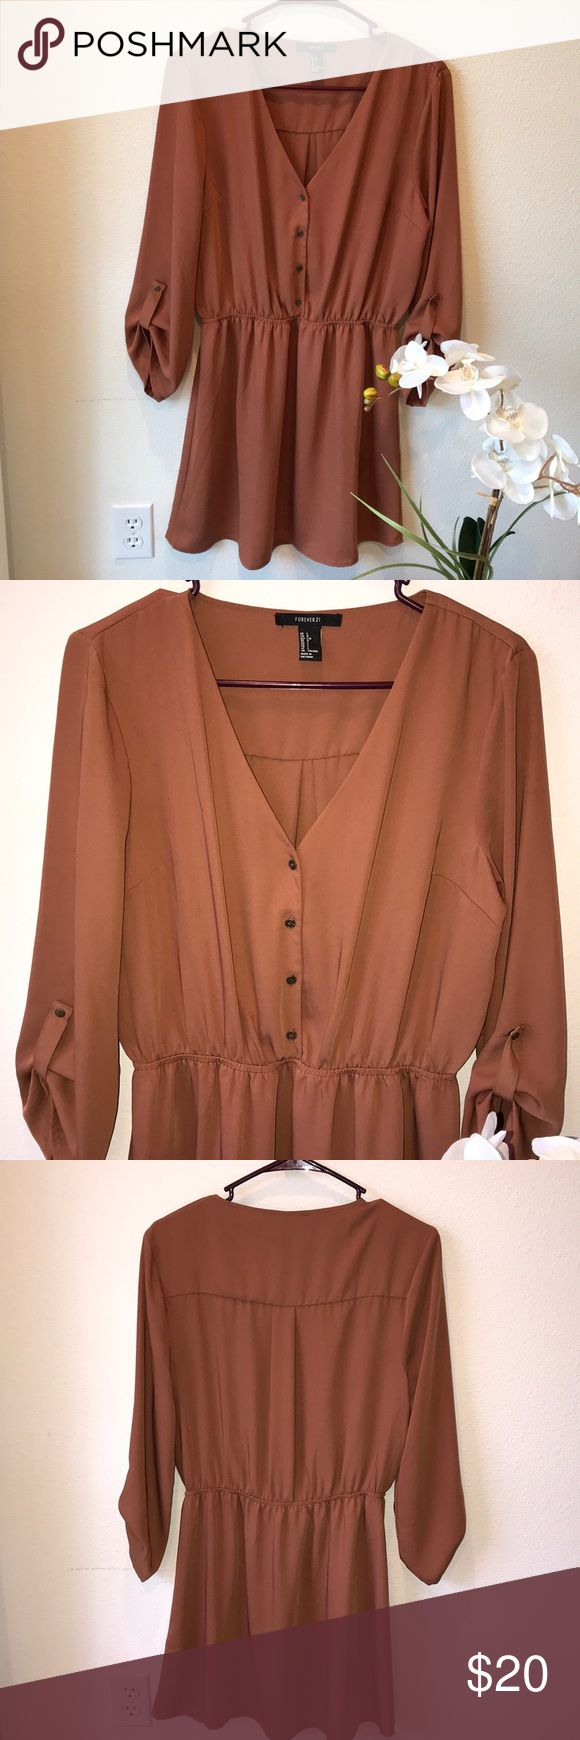 """Gorgeous brown dress EUC, size Large. Wear now as a Tunic with leggings and boots, wear later with sandals. Gorgeous dark camel brown color. 3/4 sleeves. Bust 21"""", waist 13"""" (flat)/ 19 1/2"""" (full stretch), length from waist 17."""" I ❤️offers! Stock pic shows similar fit. Forever 21 Dresses Mini"""